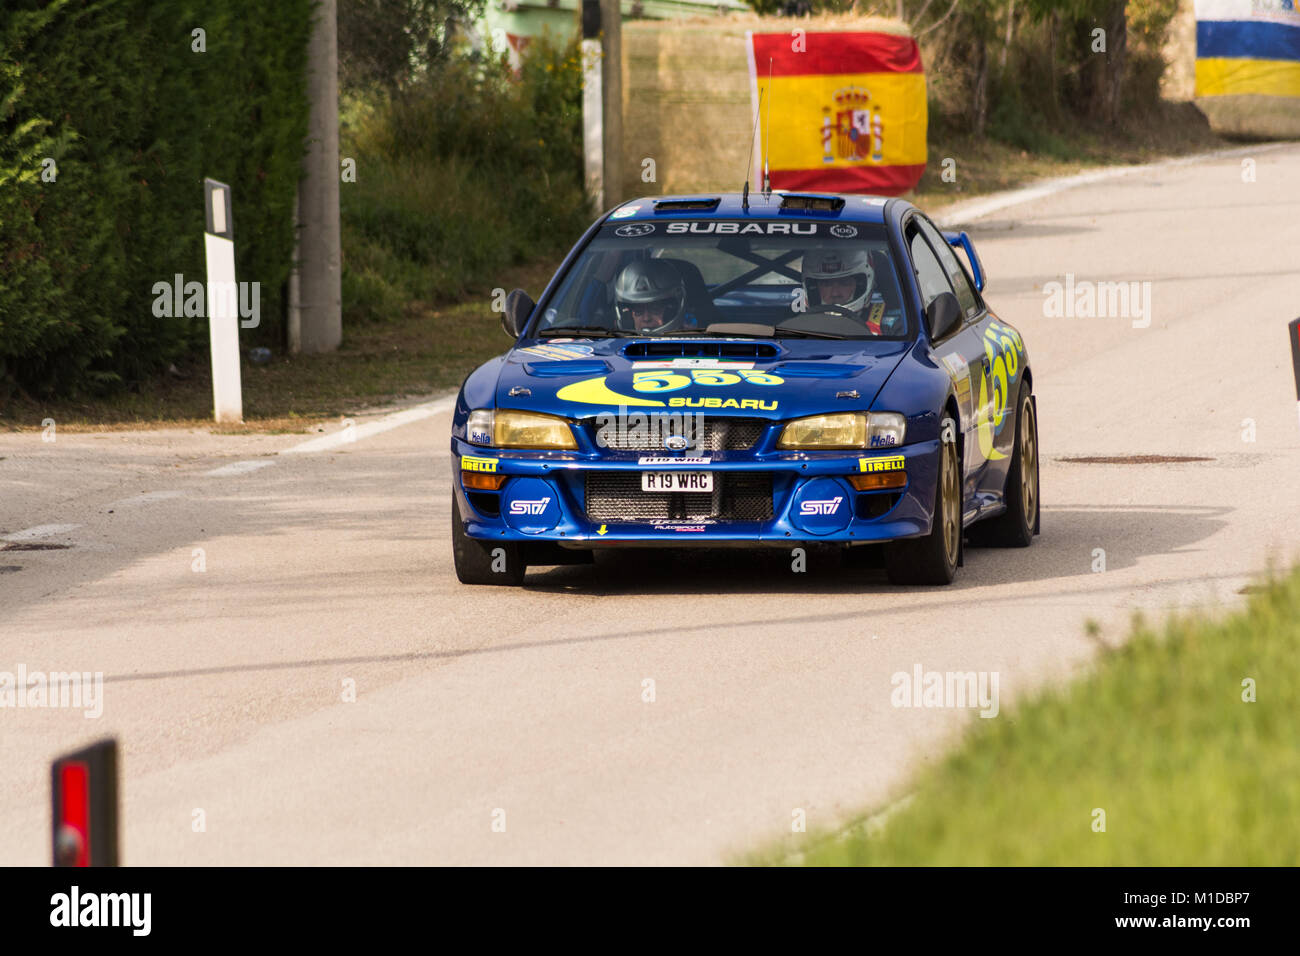 subaru impreza wrc old racing car rally the legend 2017 the famous